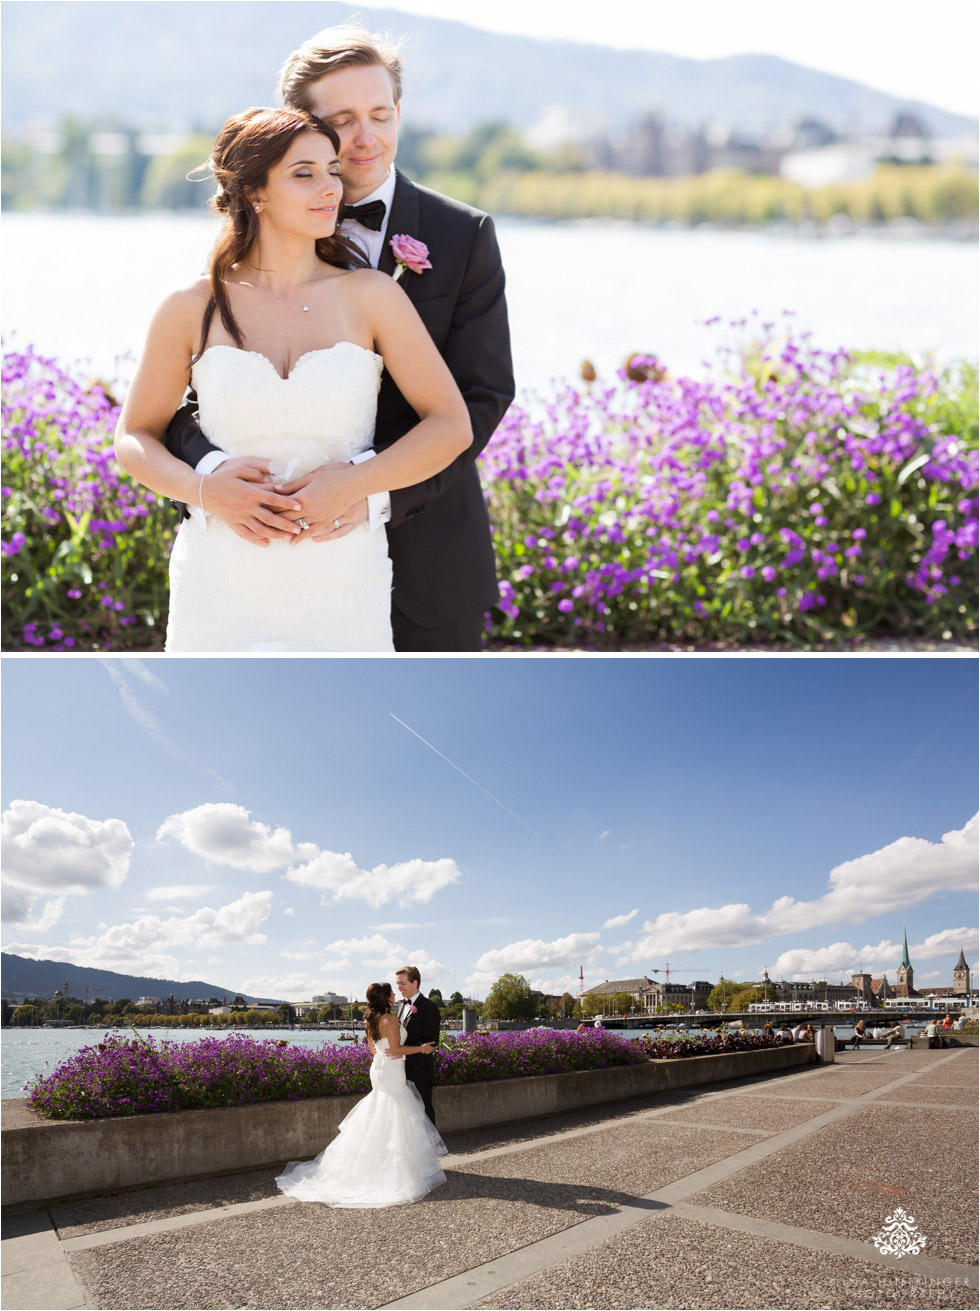 Turkey & USA in Switzerland | Duygu & Bryans International Wedding at Haute | Zurich - Blog of Nina Hintringer Photography - Wedding Photography, Wedding Reportage and Destination Weddings